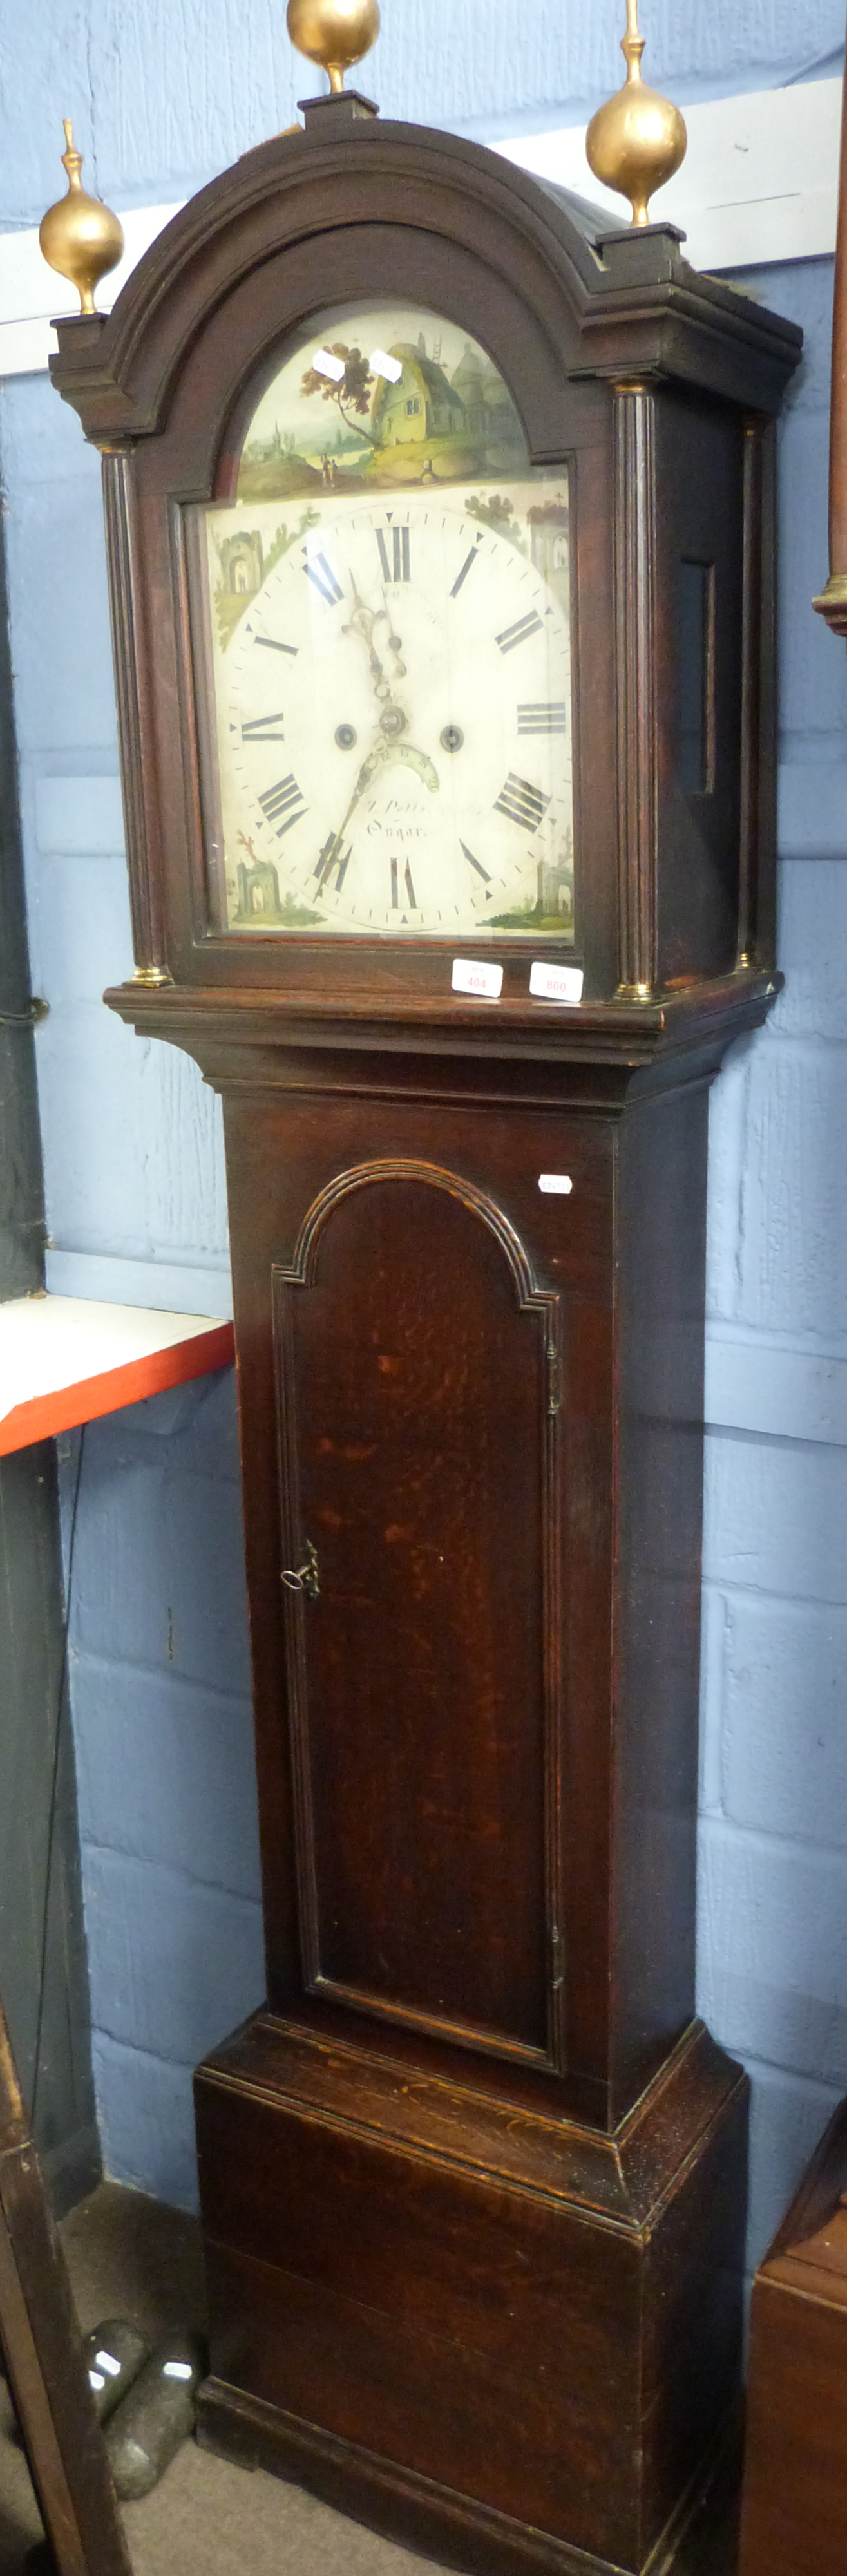 Oak longcase clock with hand painted face depicting various countryside scenes around Roman dial